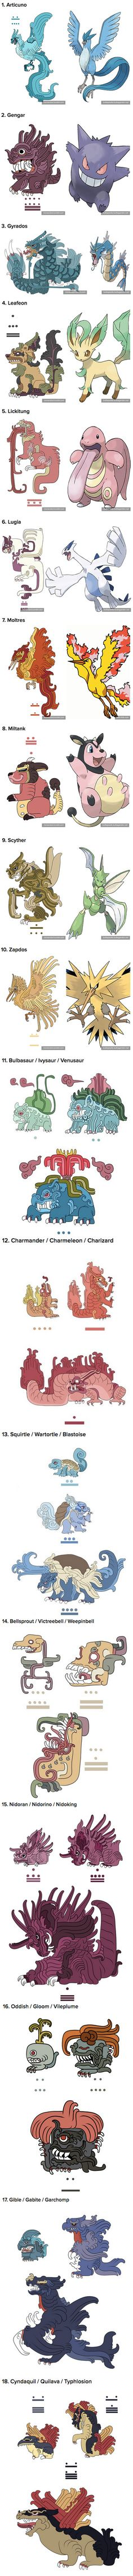 Heres what 18 Pokemon characters would look like as Mayan gods.